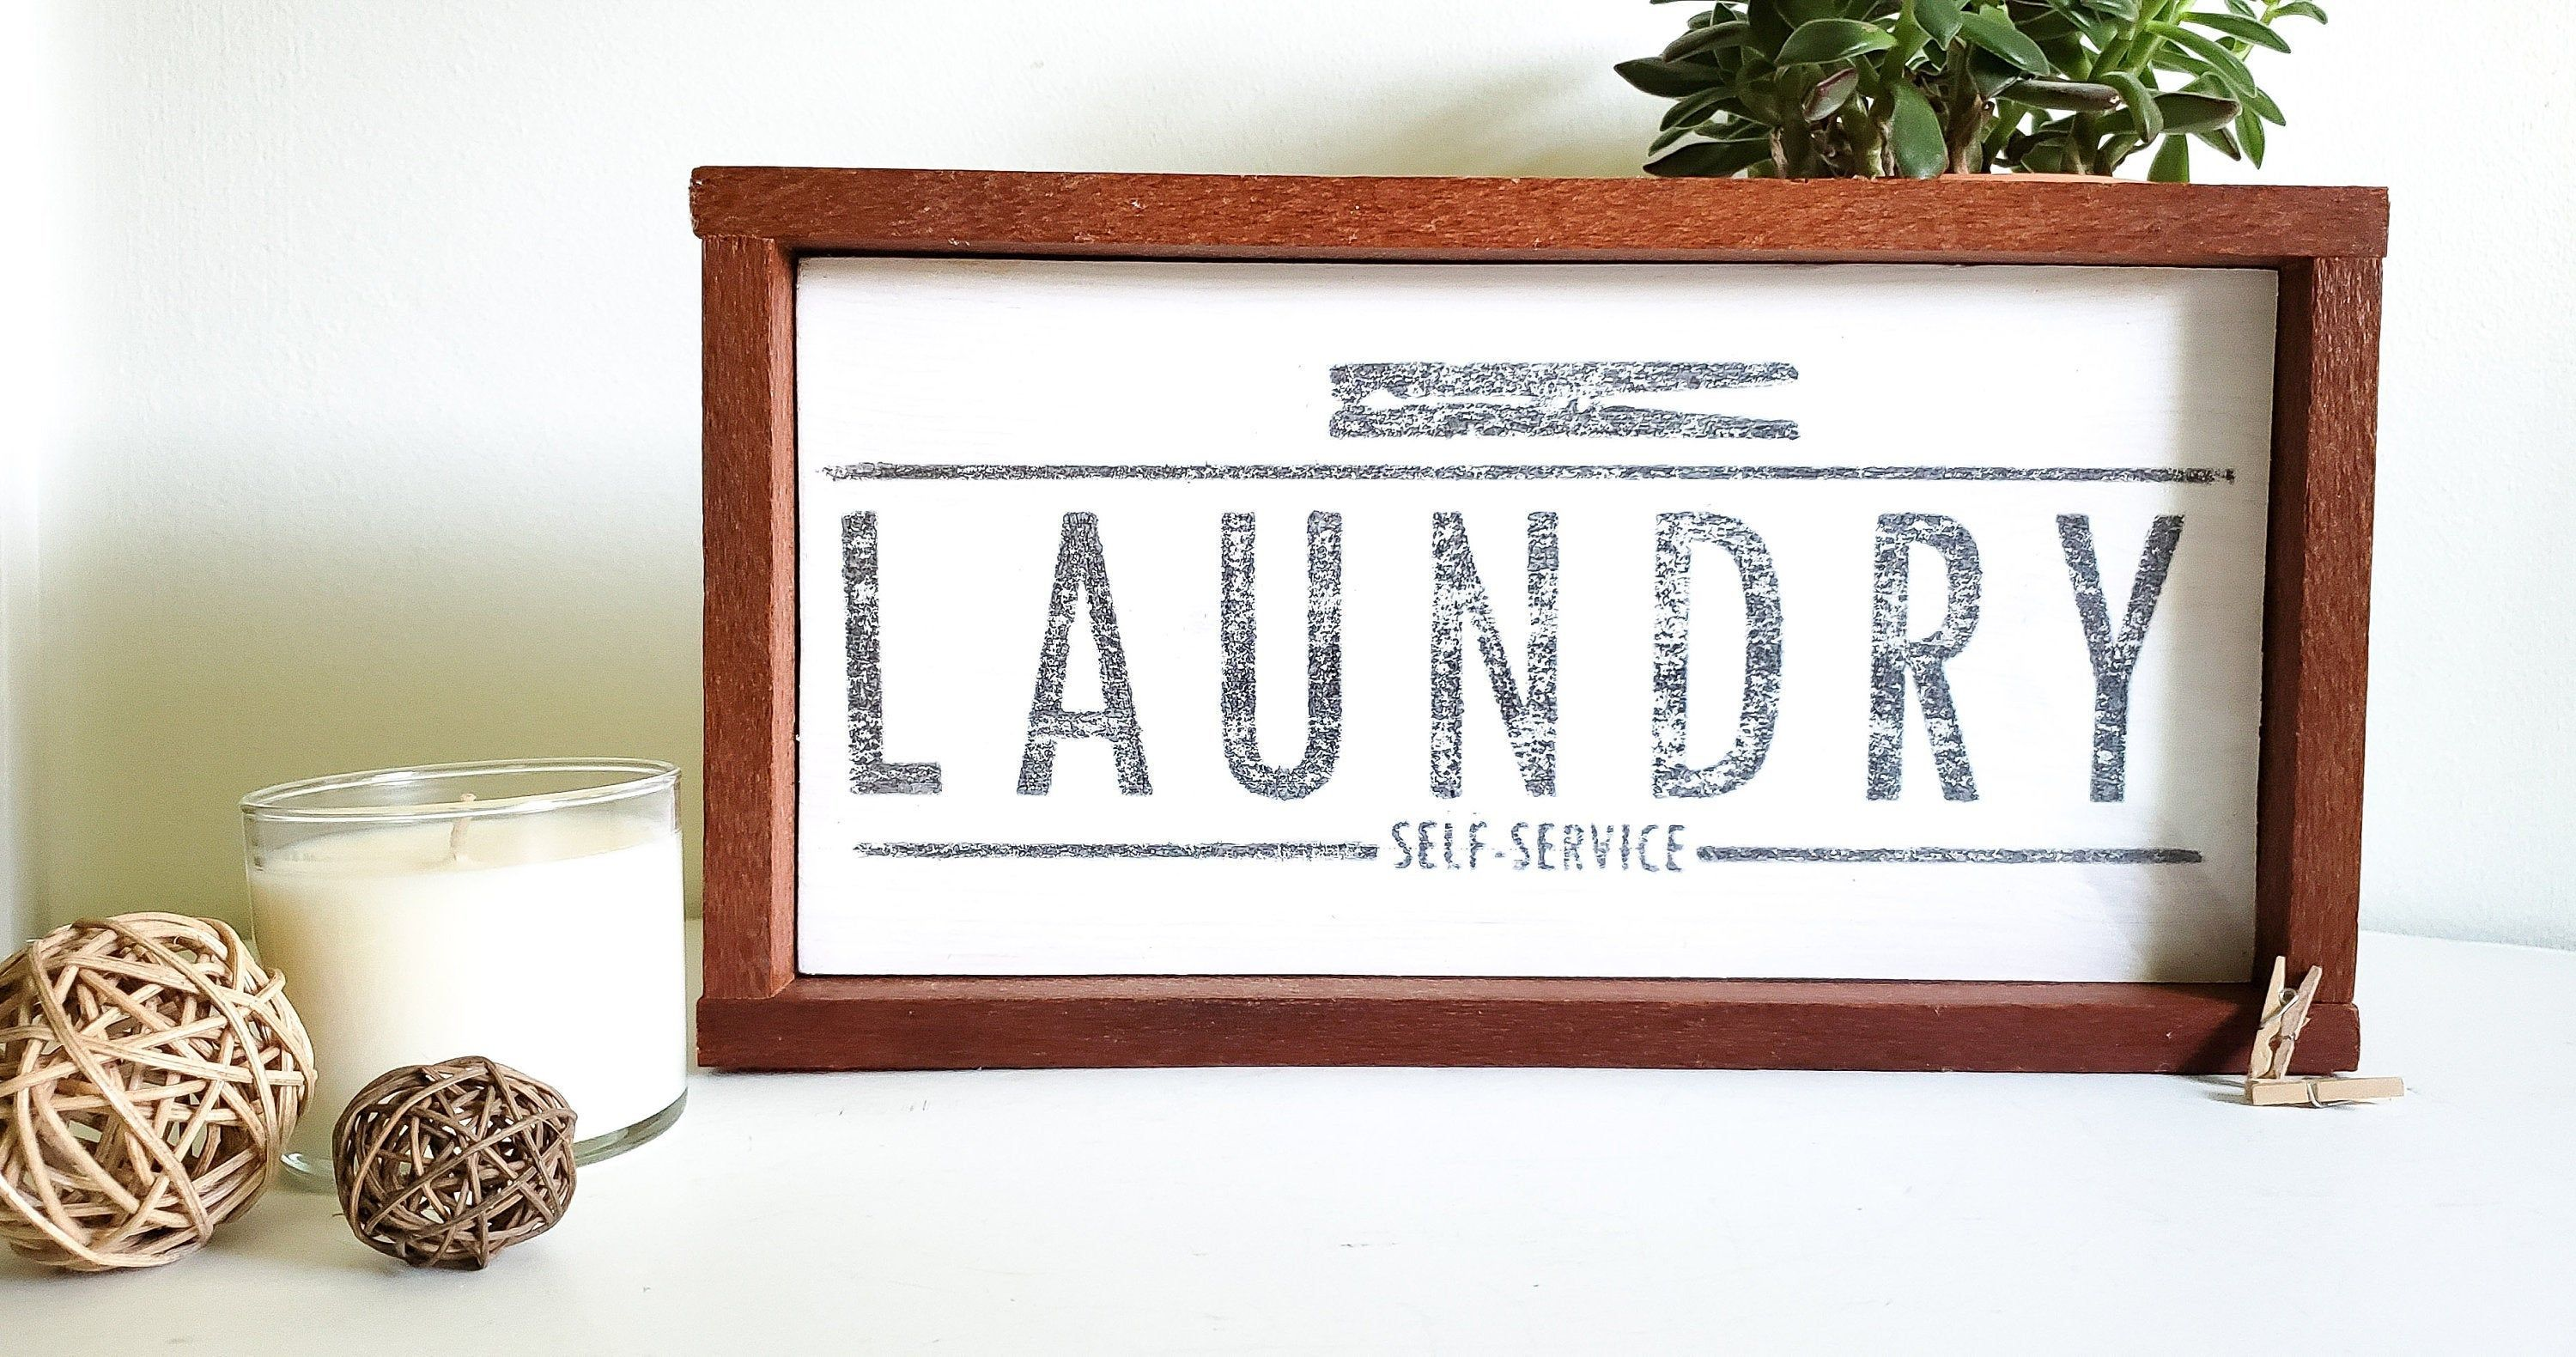 Laundry Self Service sign//Laundry sign//laundry room sign